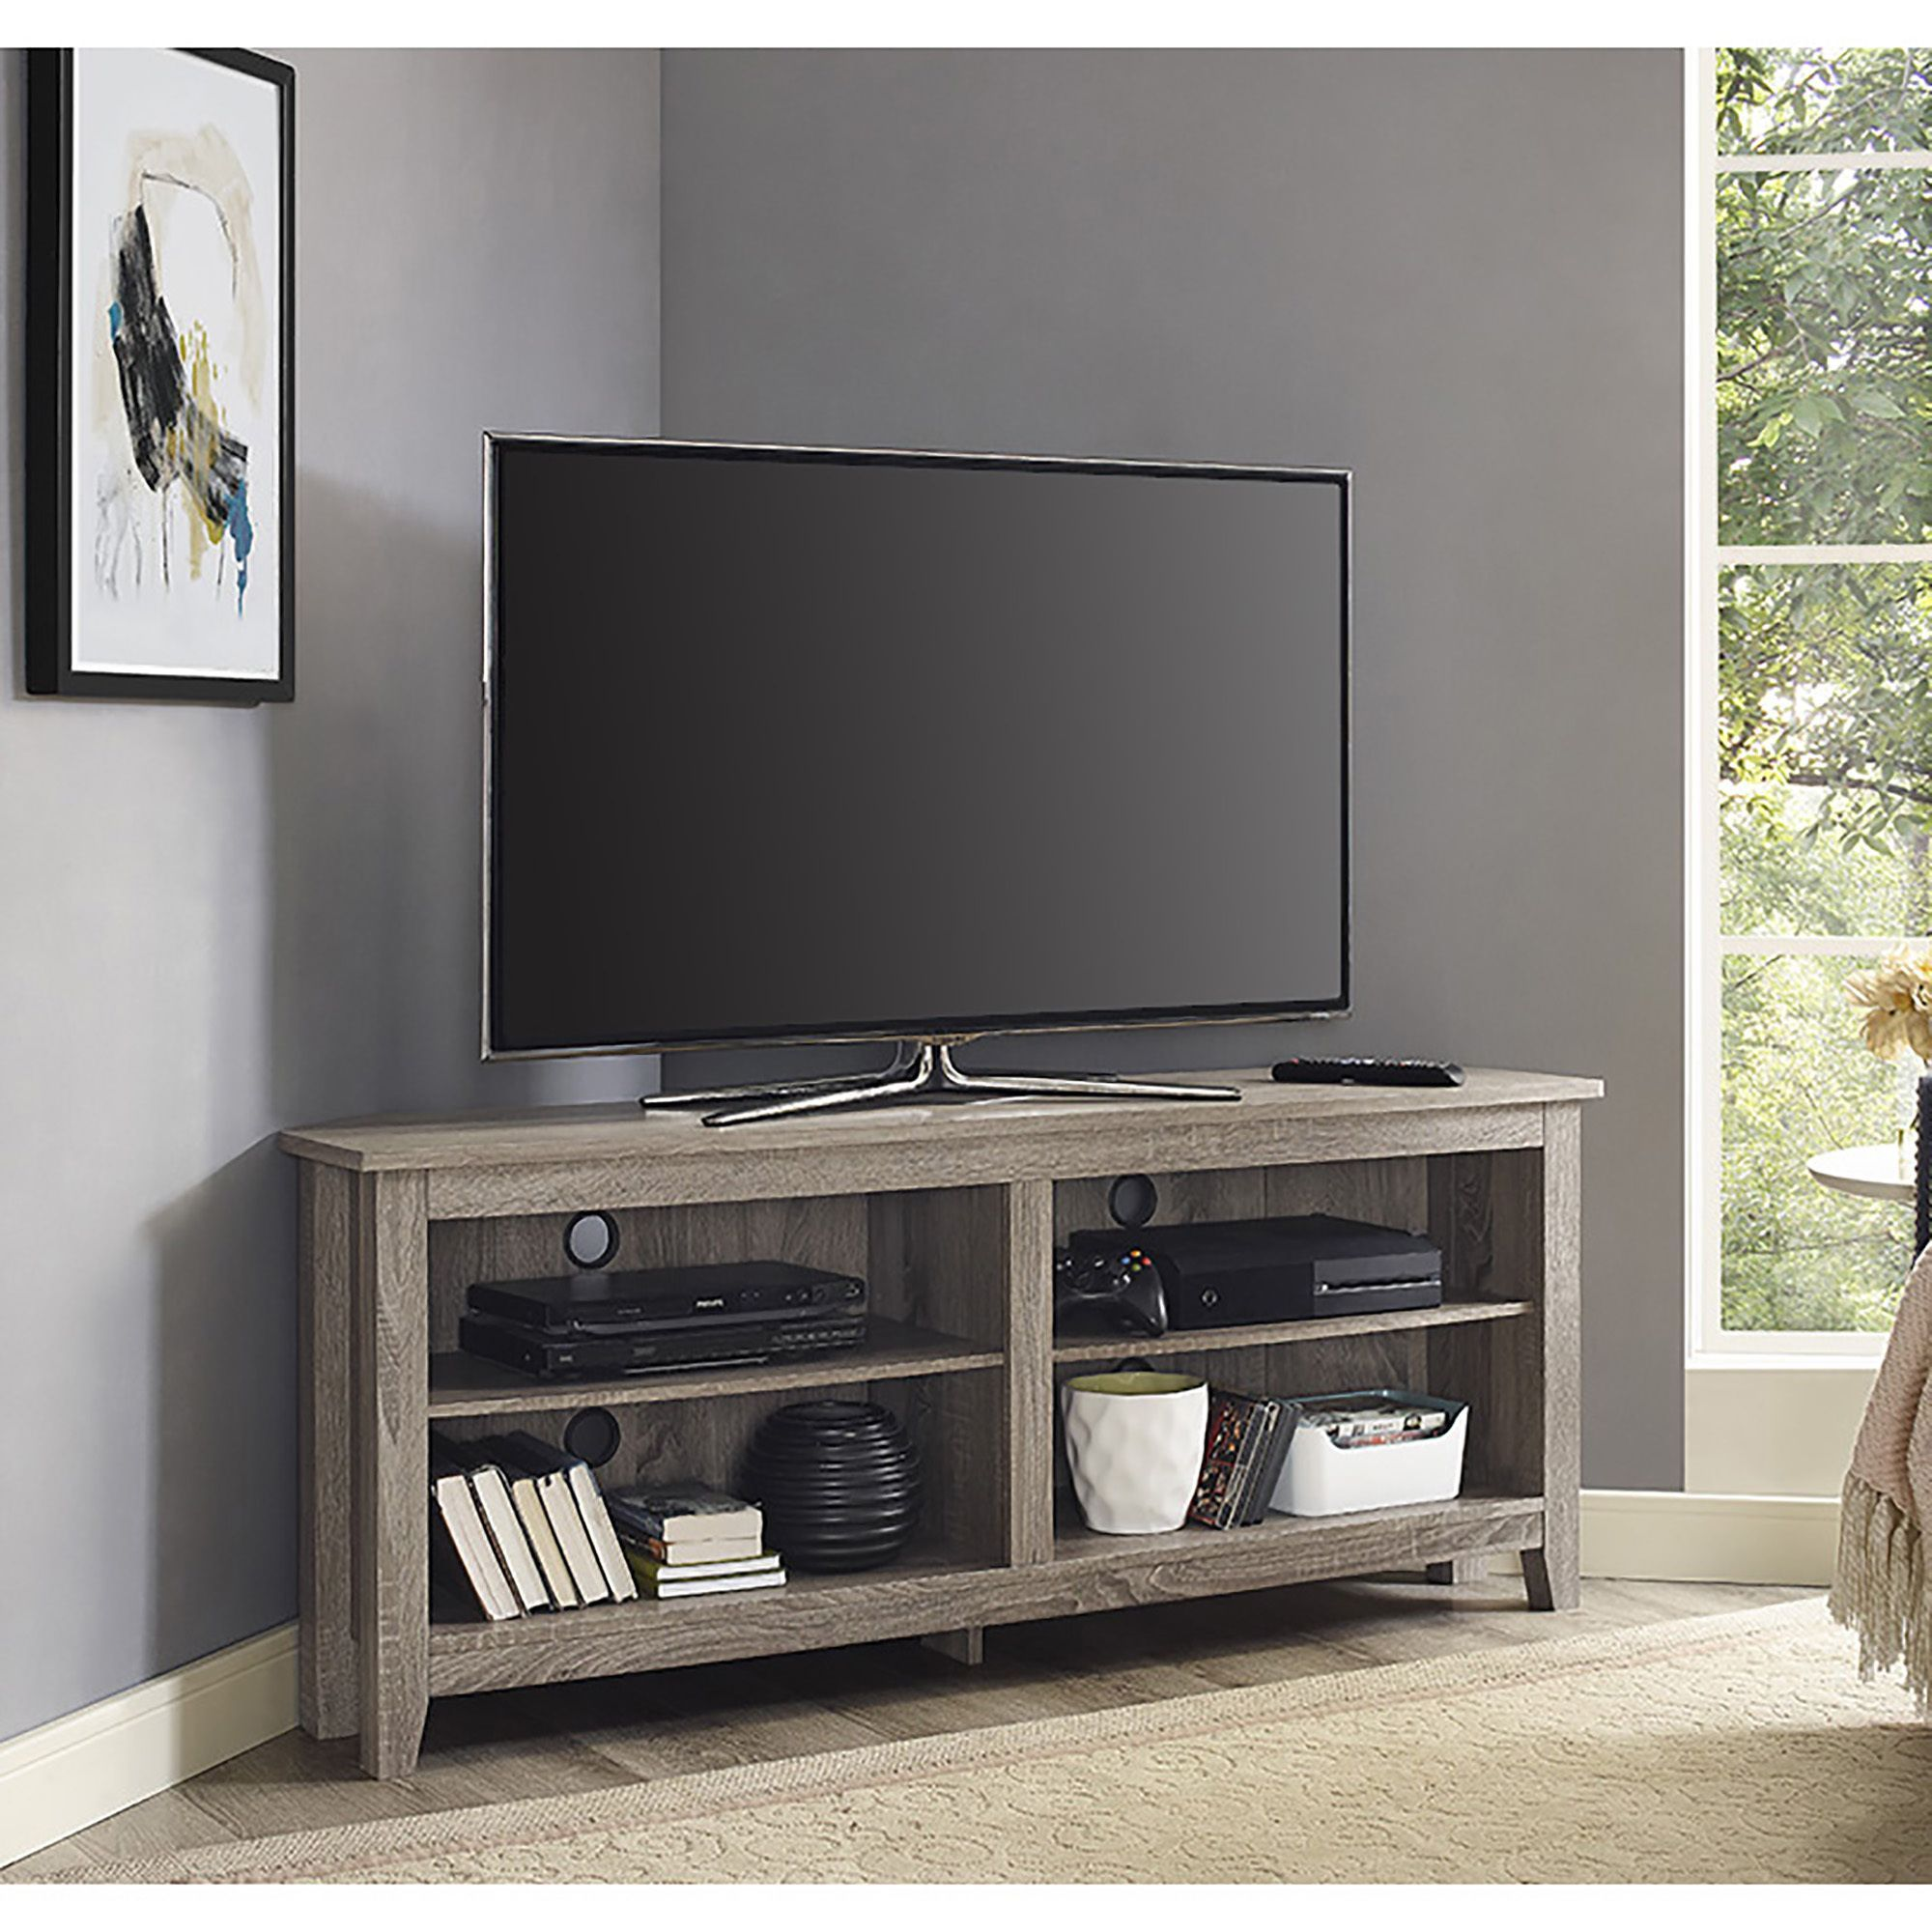 room entertainment stoney centers console browse cottage vaughan stands aspenhome drf ontario hamilton tv living creek products toronto canyon stand inch